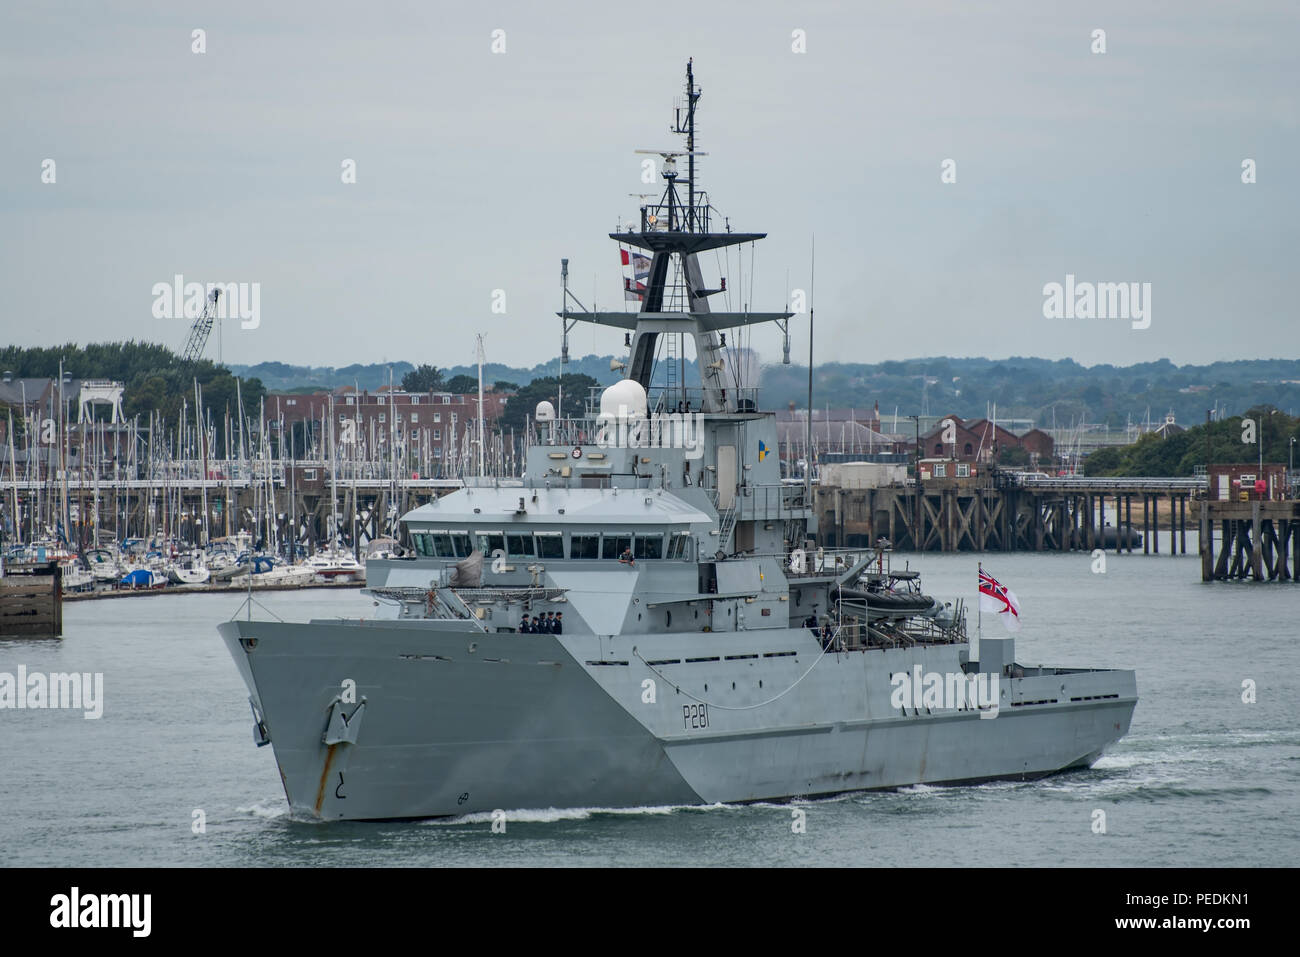 The British Royal Navy River Class (Batch 1) OPV, HMS Tyne, returned to active service at Portsmouth, UK on 14/8/18 after a short period in reserve. - Stock Image